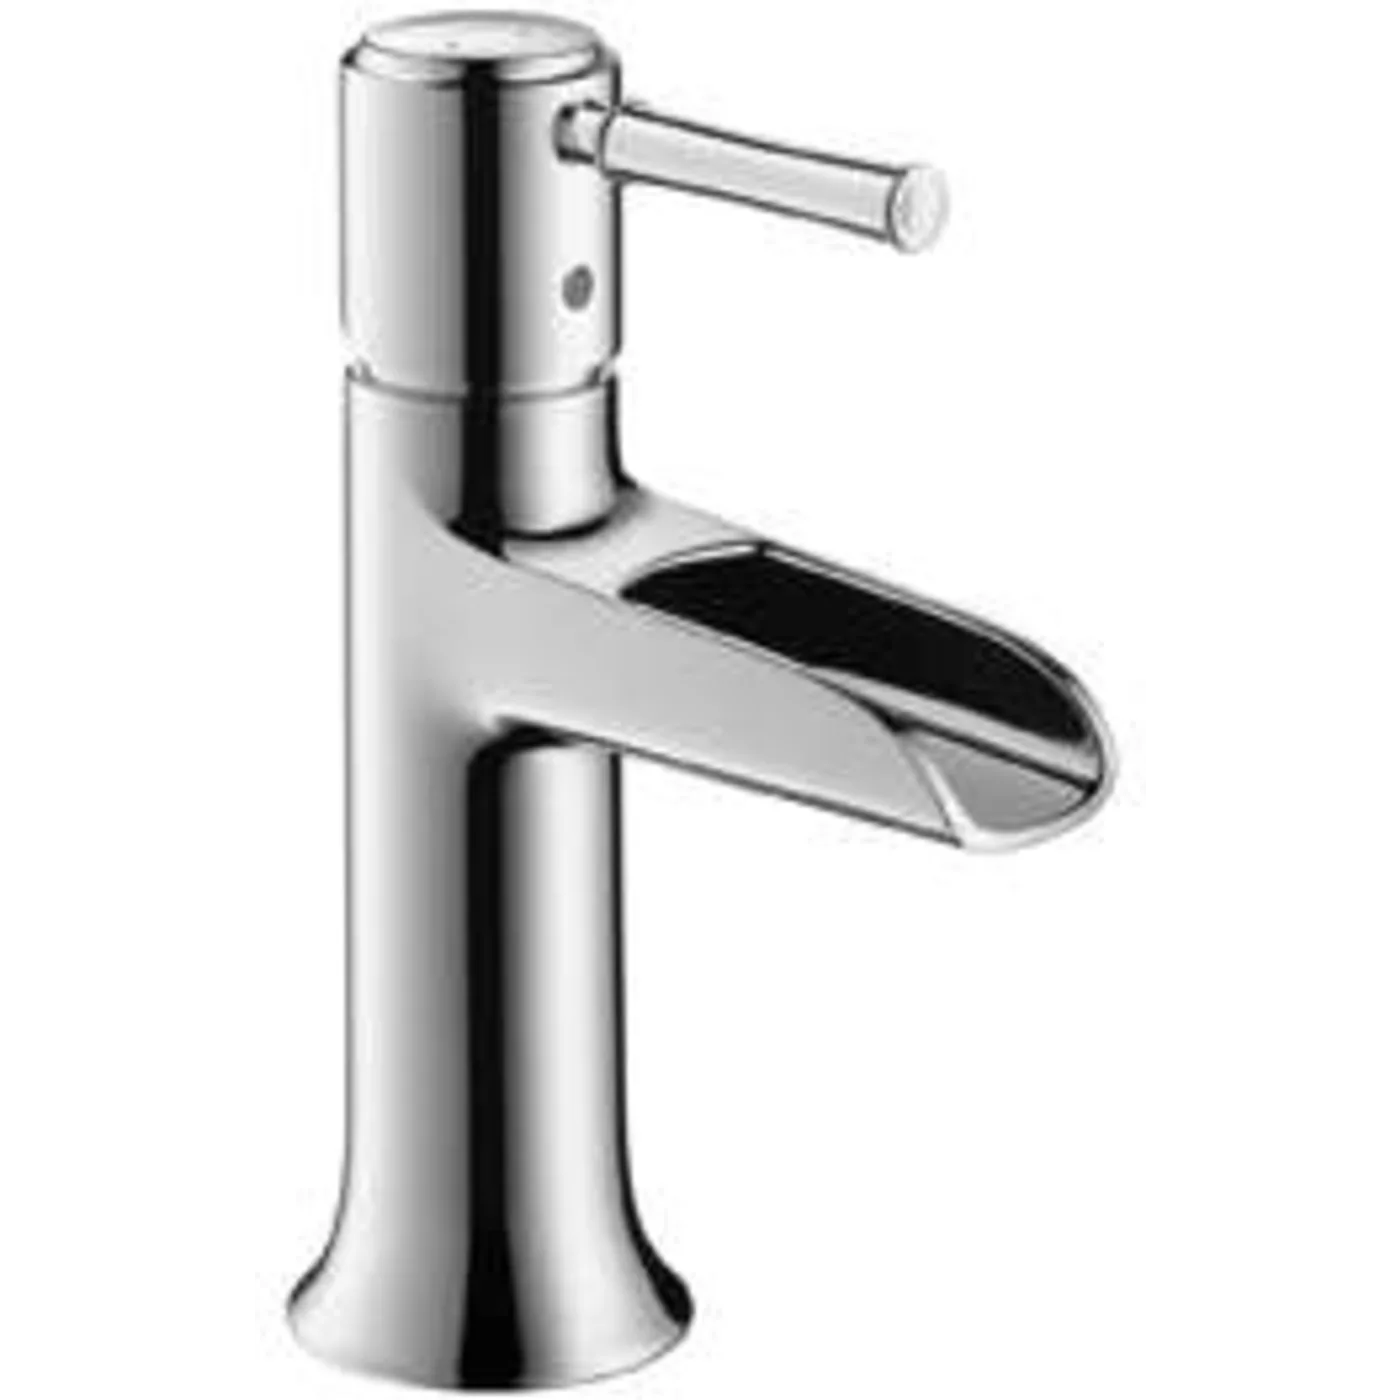 hansgrohe kitchen faucet green egg talis centerset bathroom 14127821 brushed